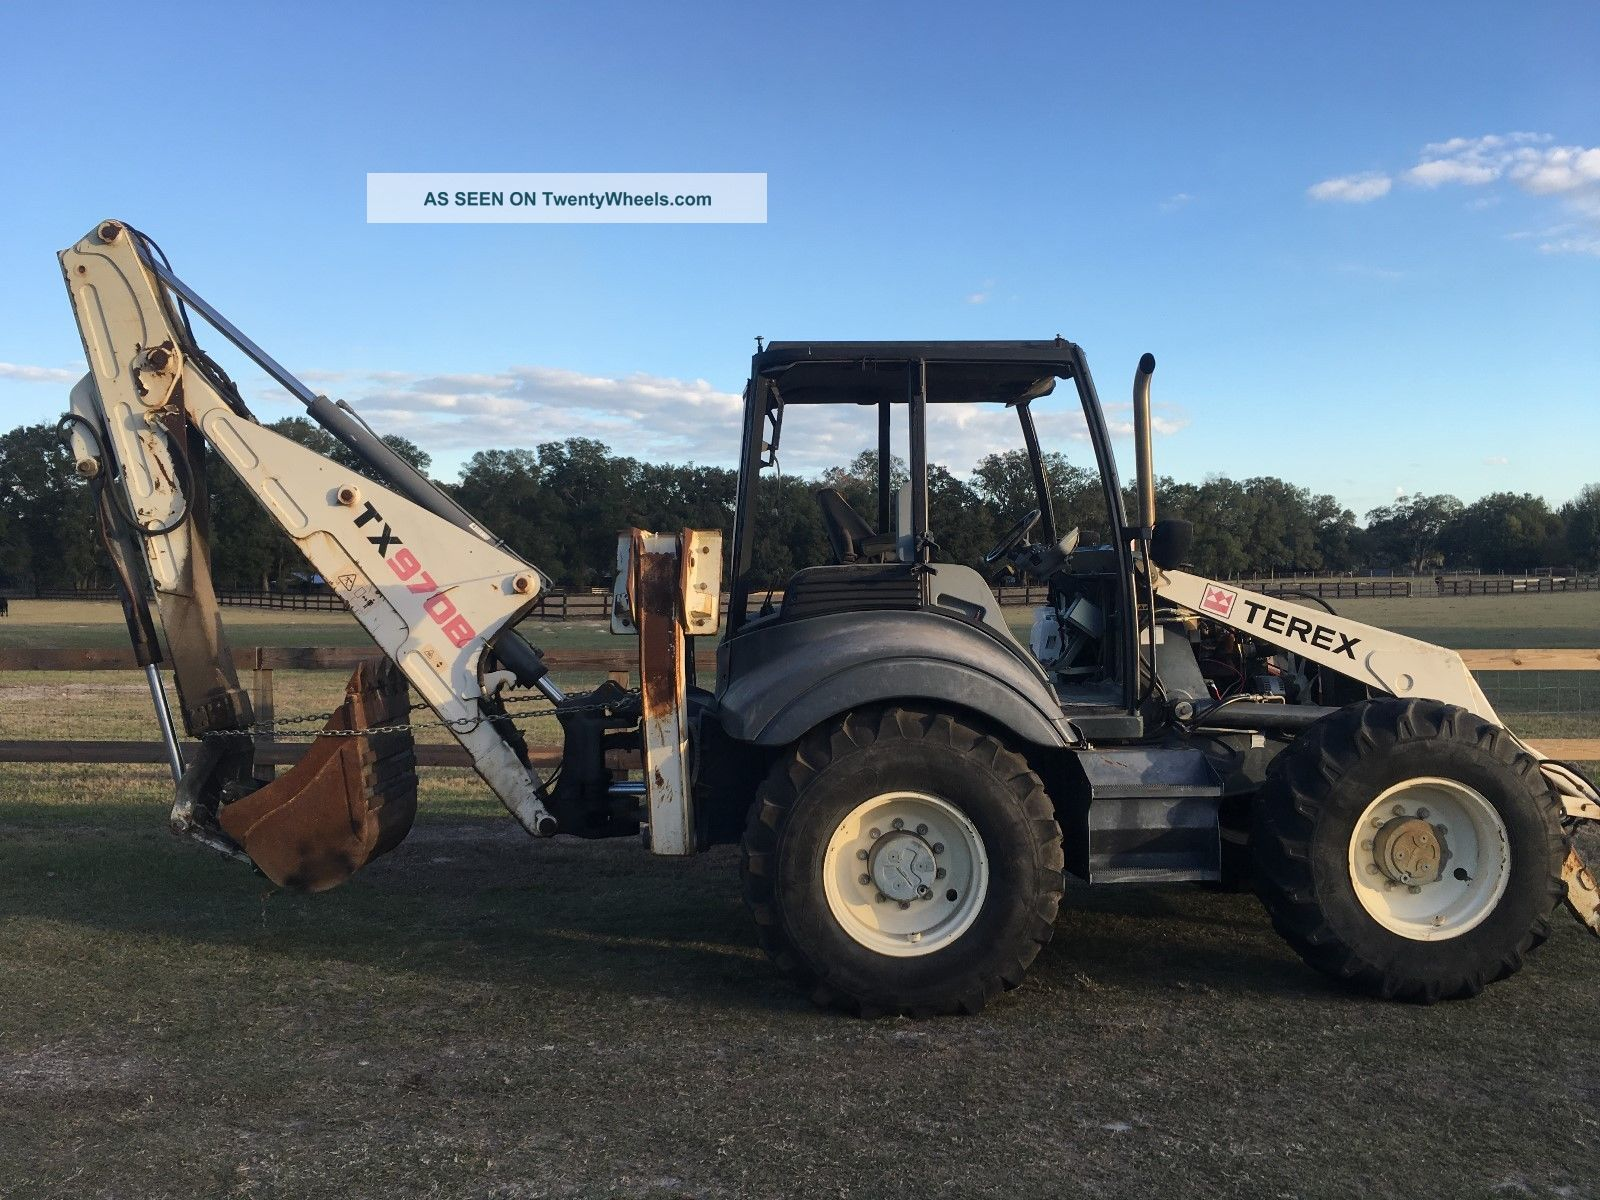 2007 Terex 970b Bachoe 4x4 Backhoe Loaders photo